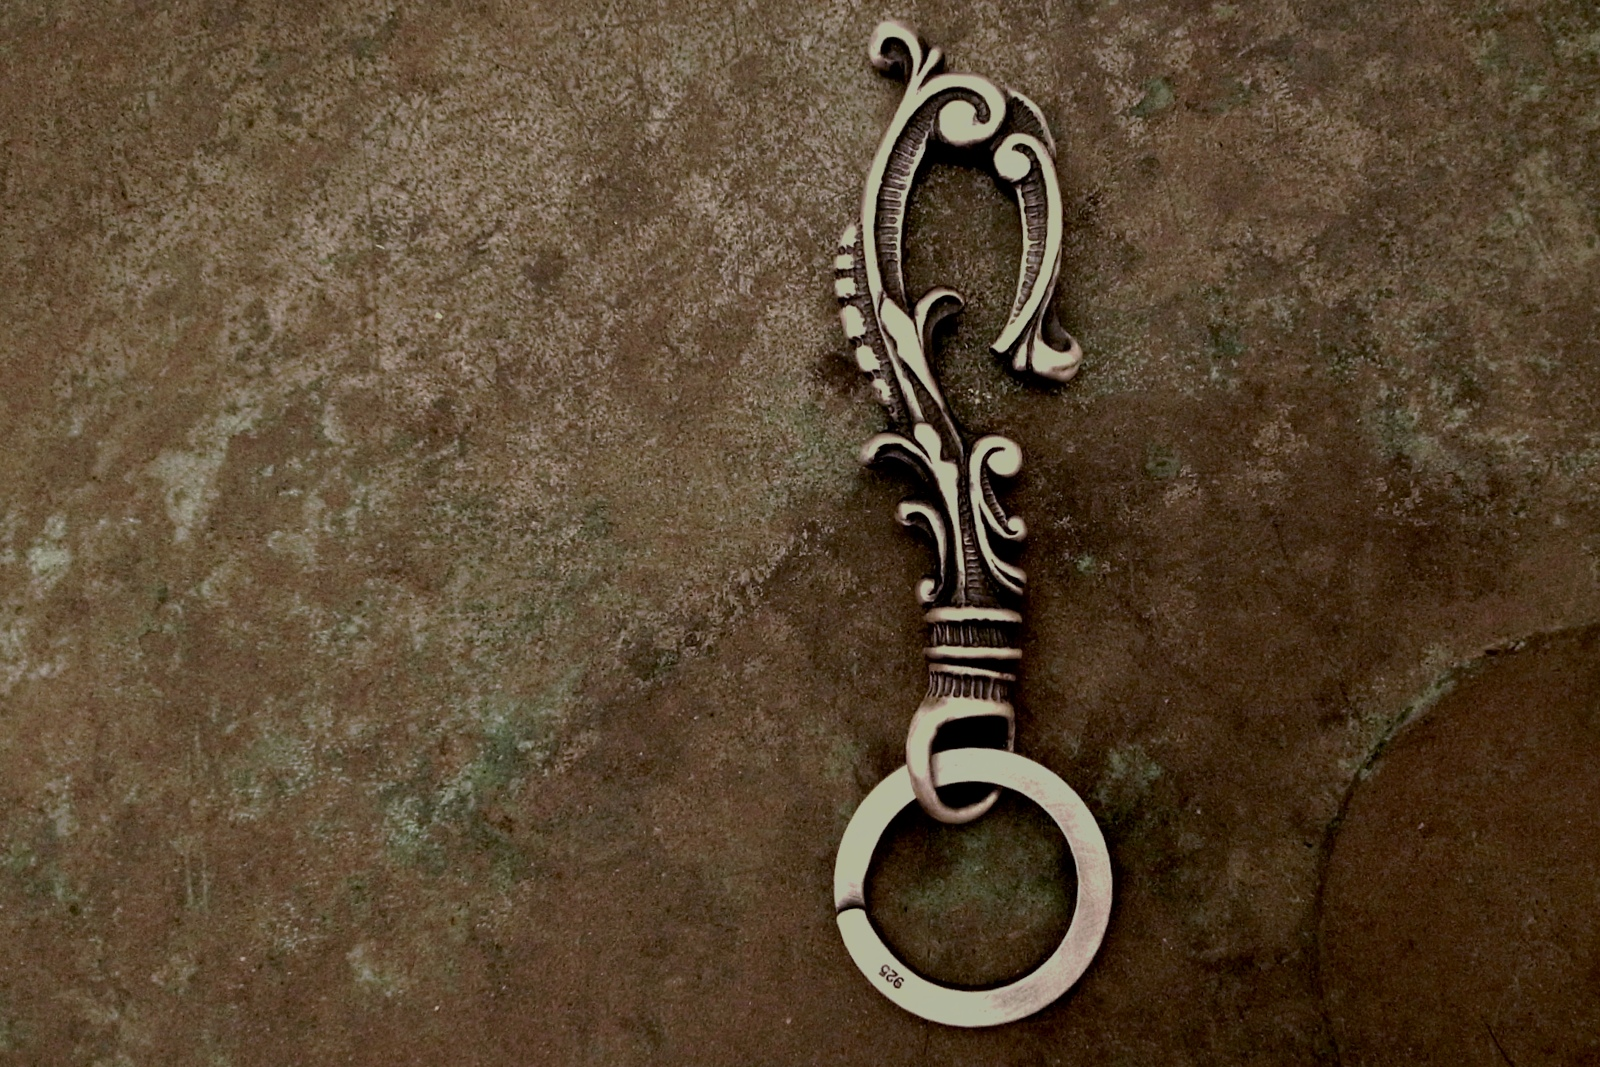 シルバー製【Antique Hook Keyholder】